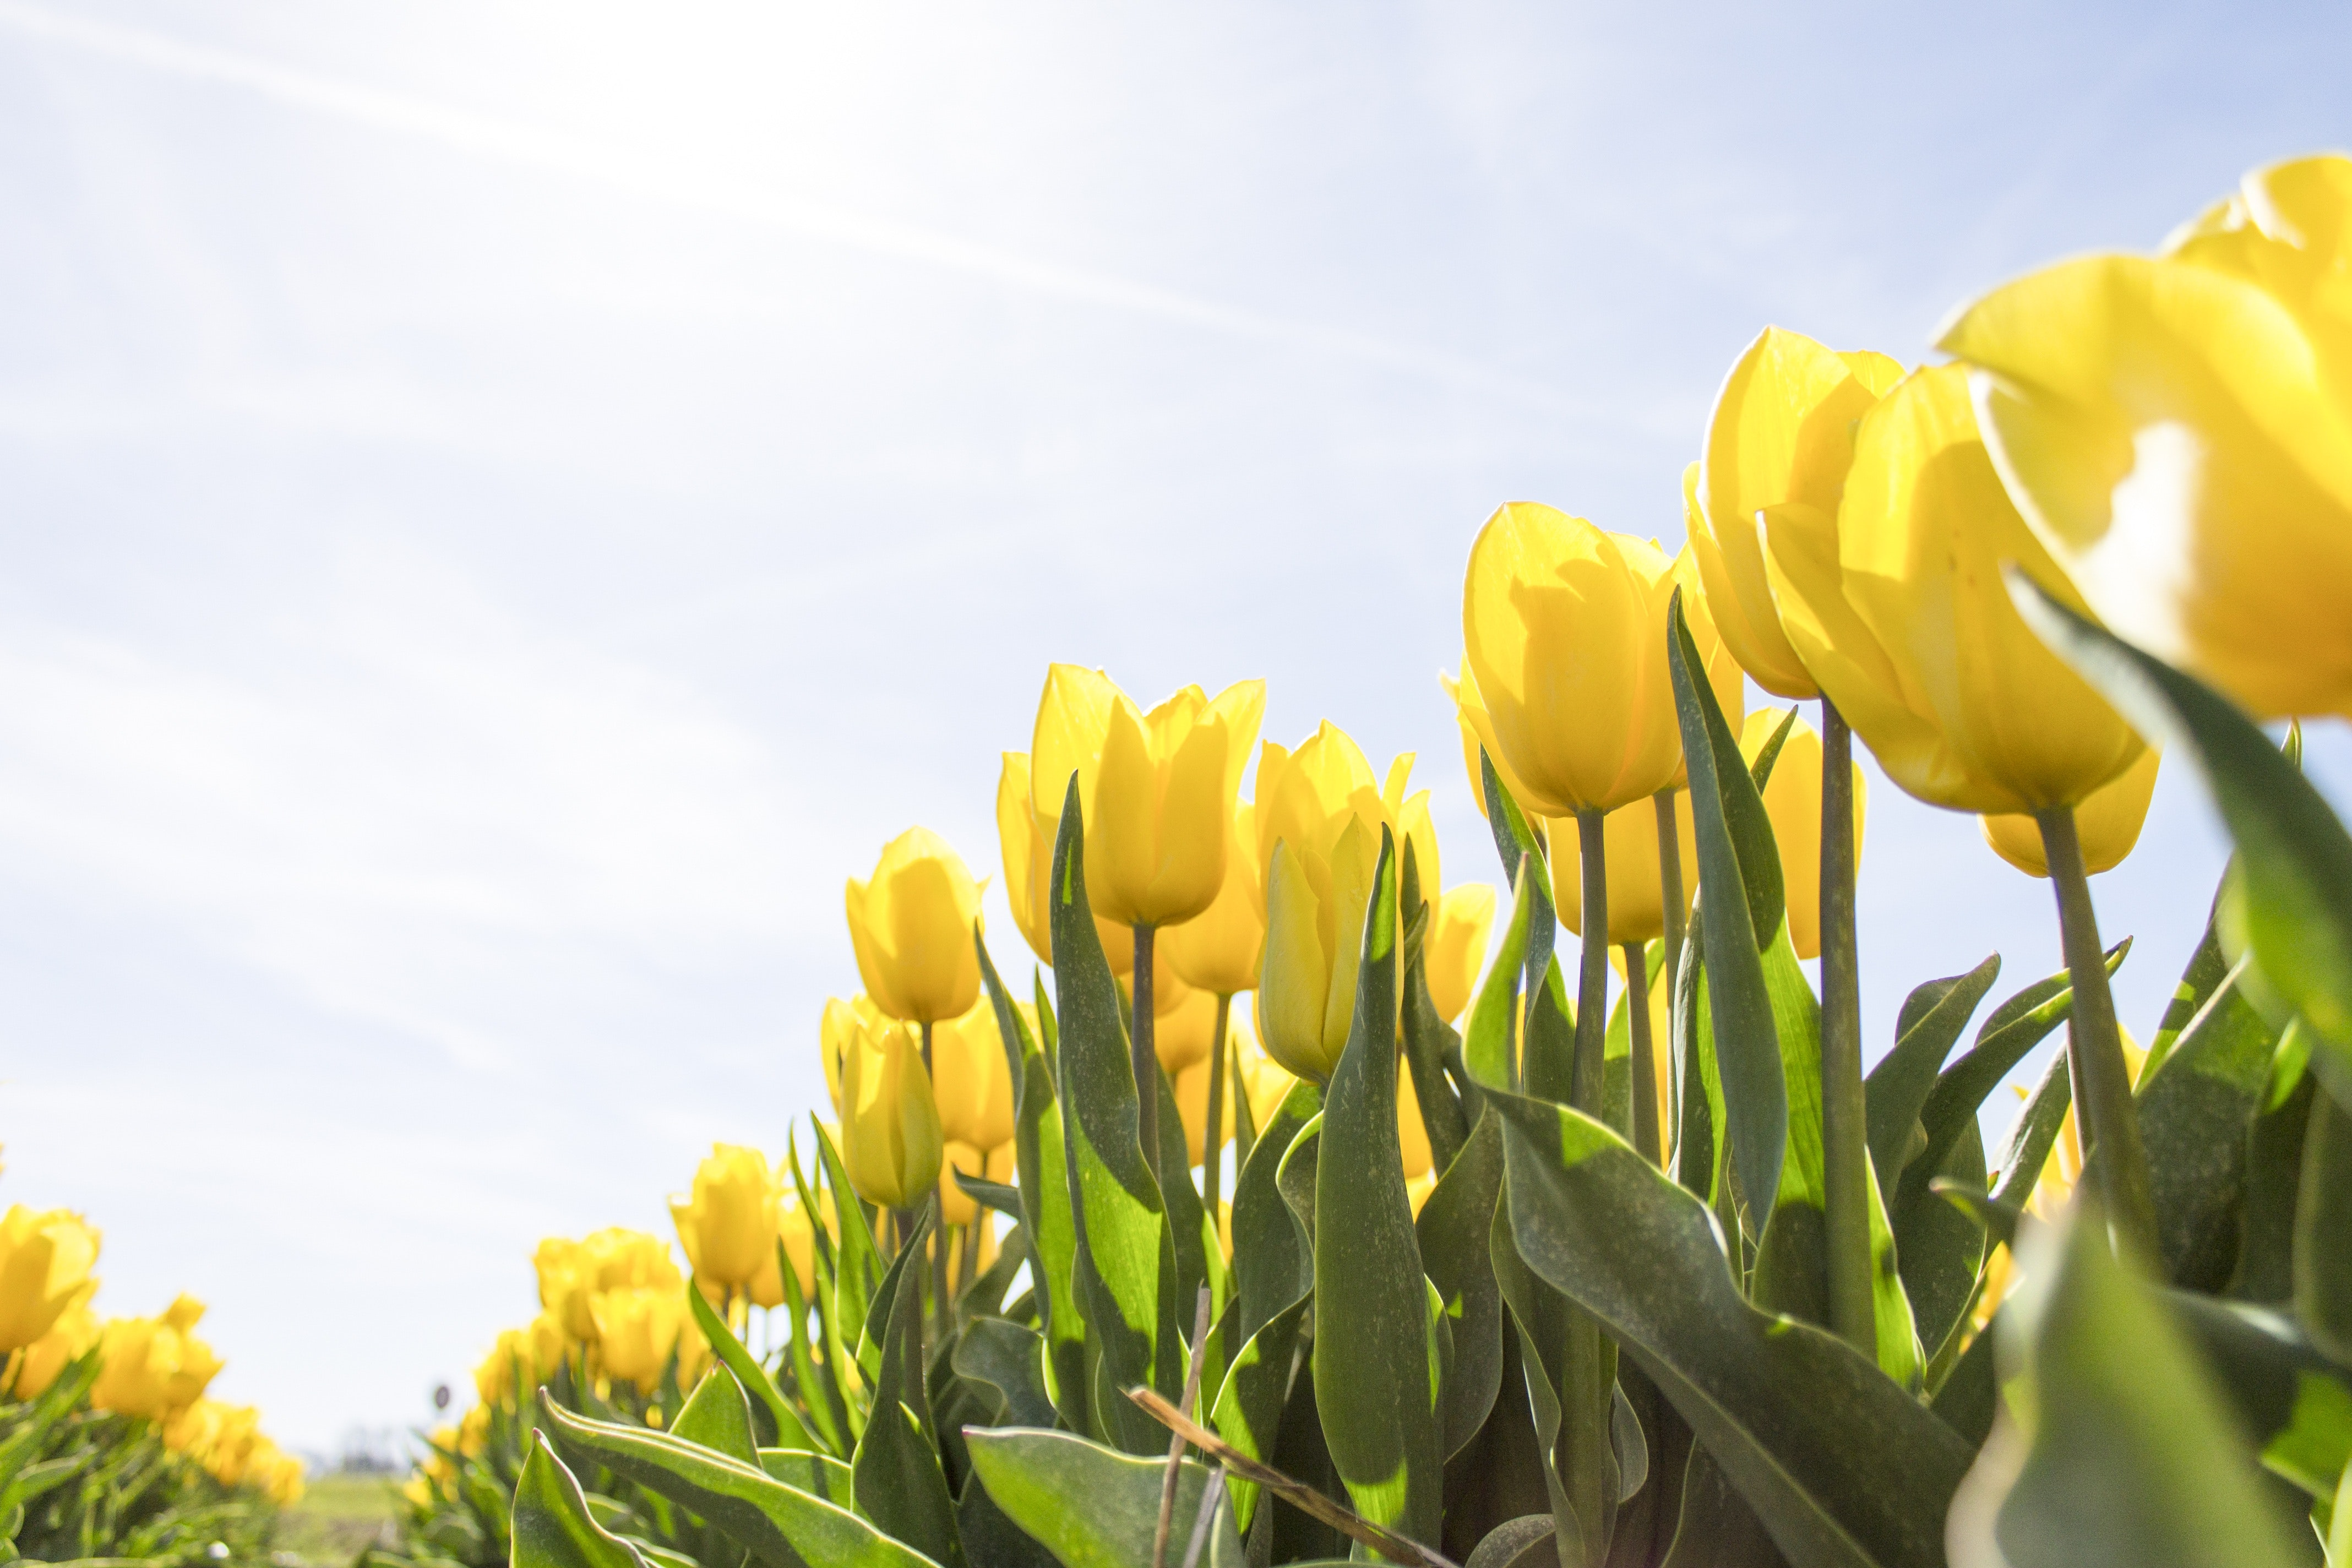 Yellow Tulip Flower Field during Daytime, Sun, Growth, Outdoors, Plants, HQ Photo